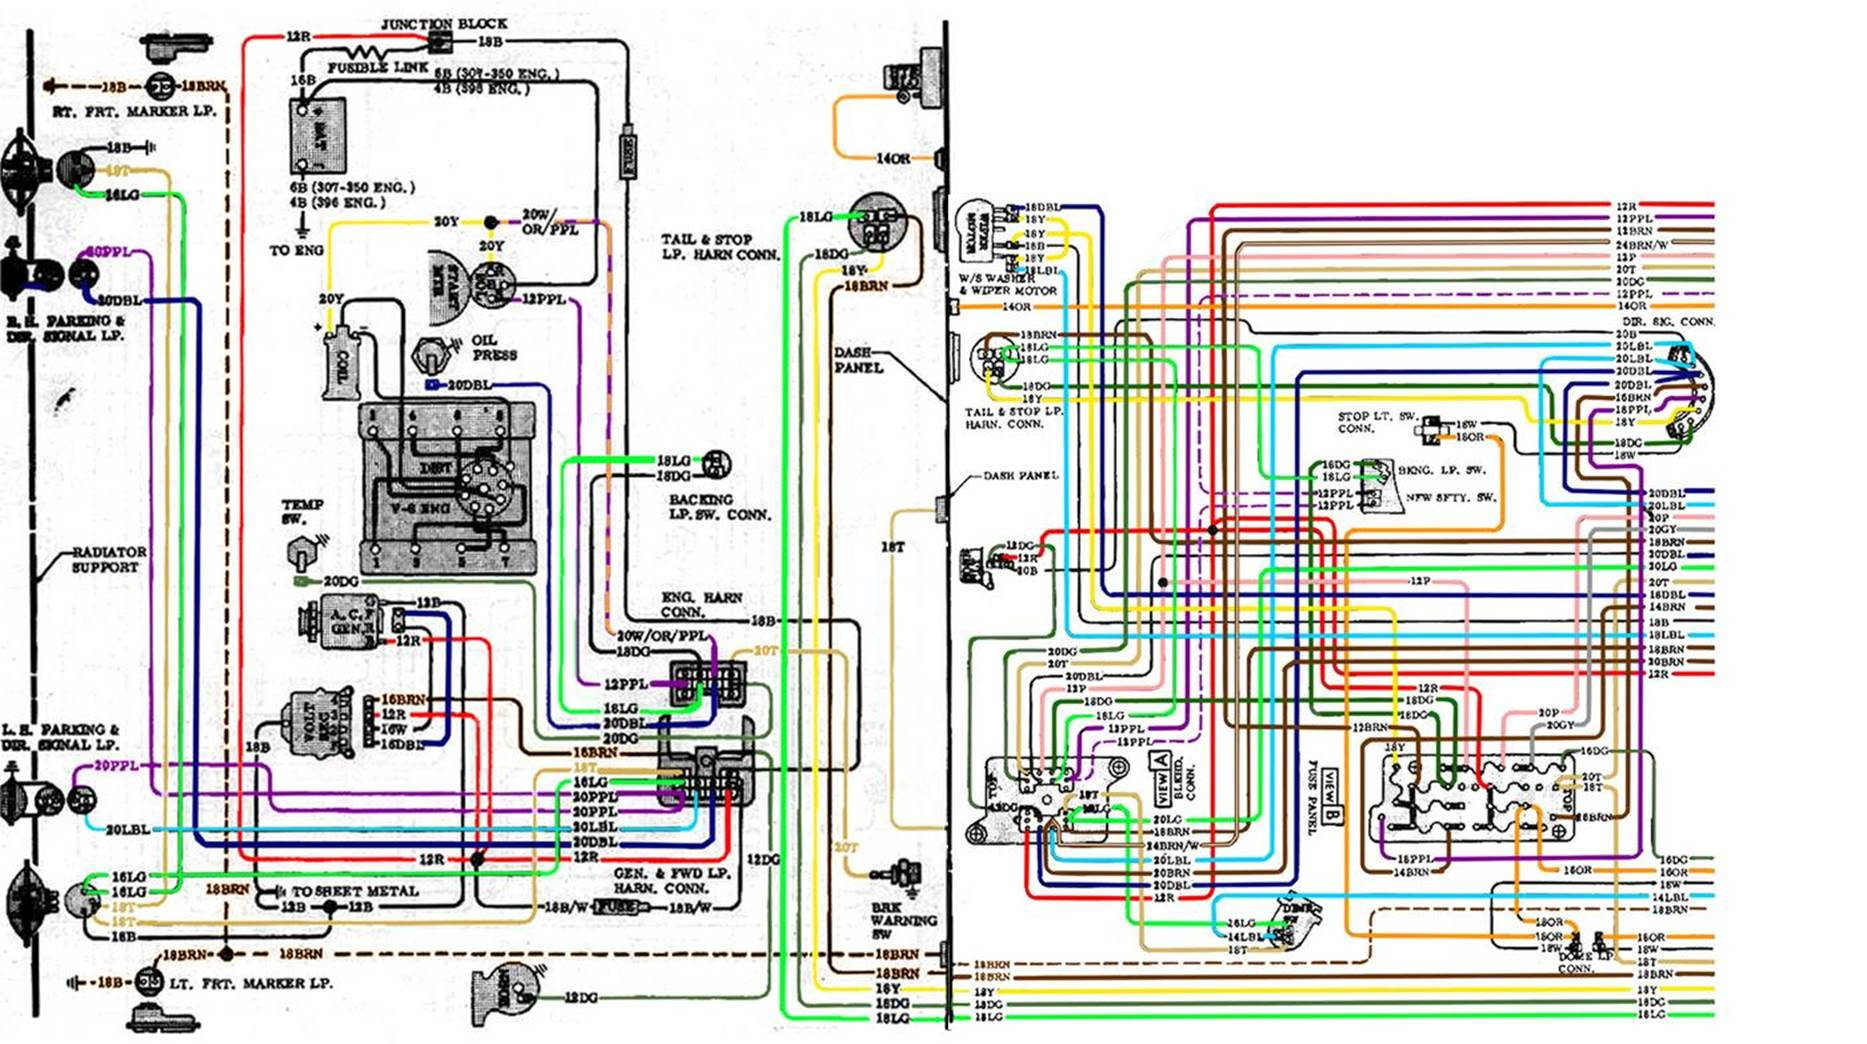 image002 67 72 chevy wiring diagram 67-72 chevy c10 wiring diagram at highcare.asia